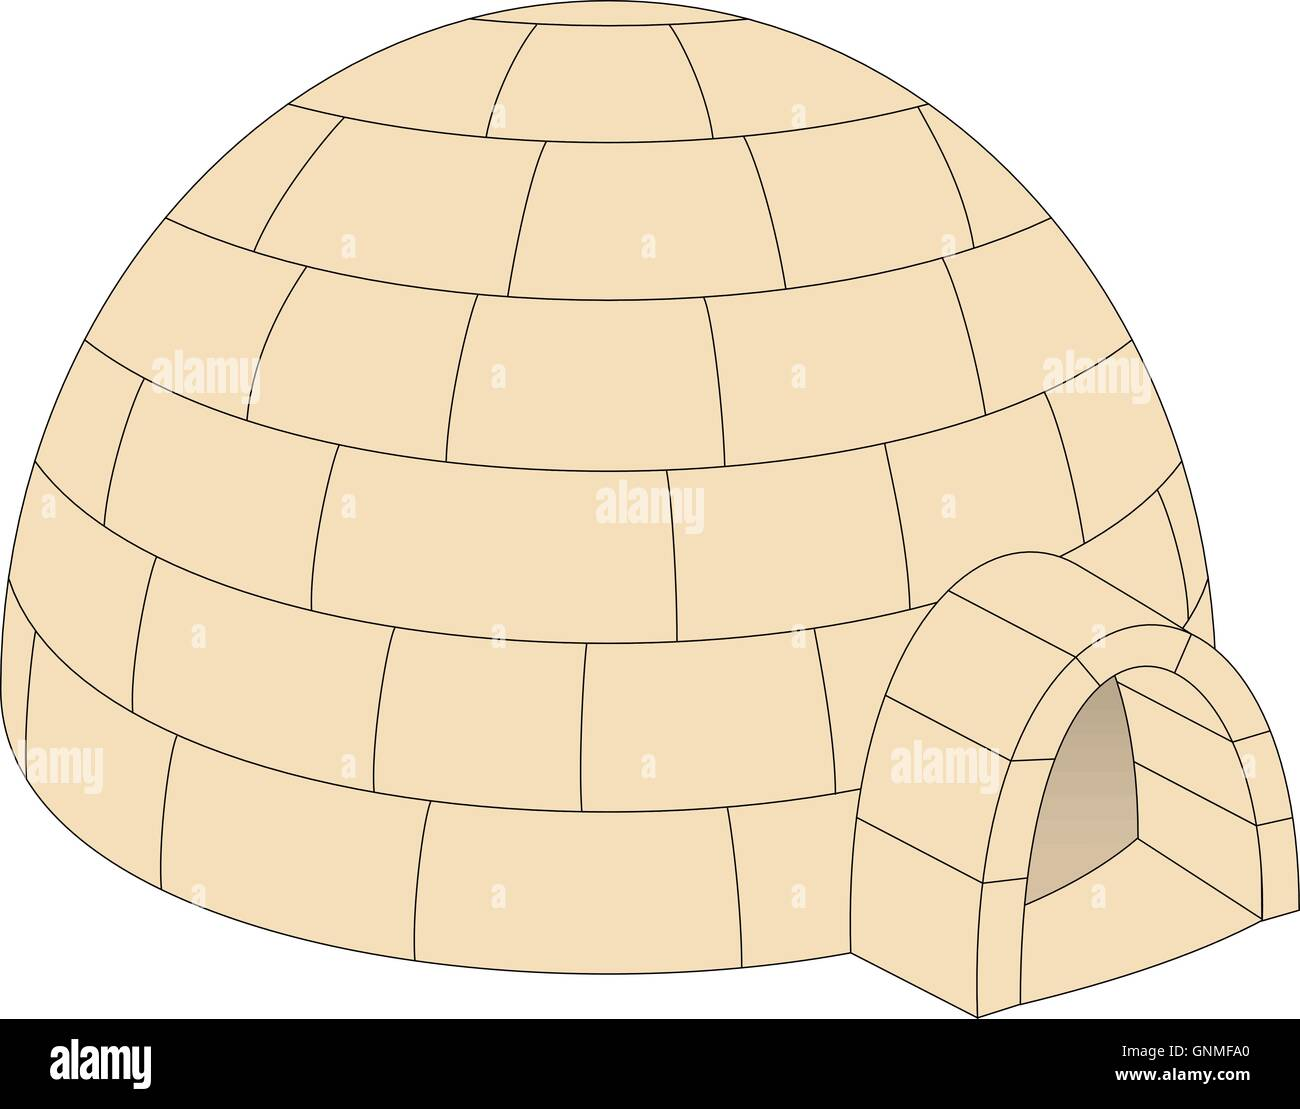 Igloo in light brown design stock vector art illustration igloo in light brown design pooptronica